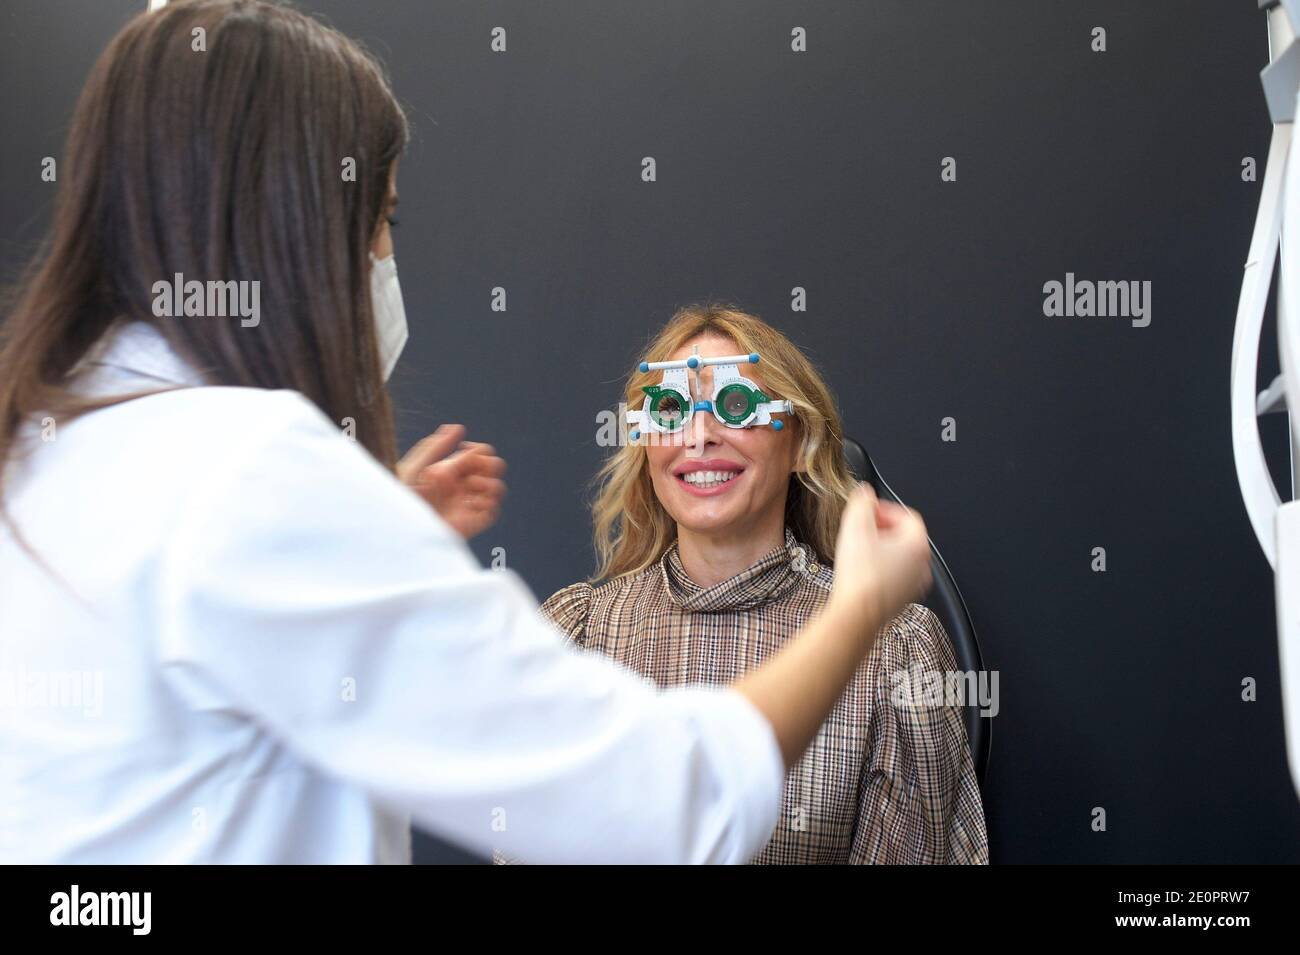 woman in an optician's having a visual exam and buying glasses. Stock Photo